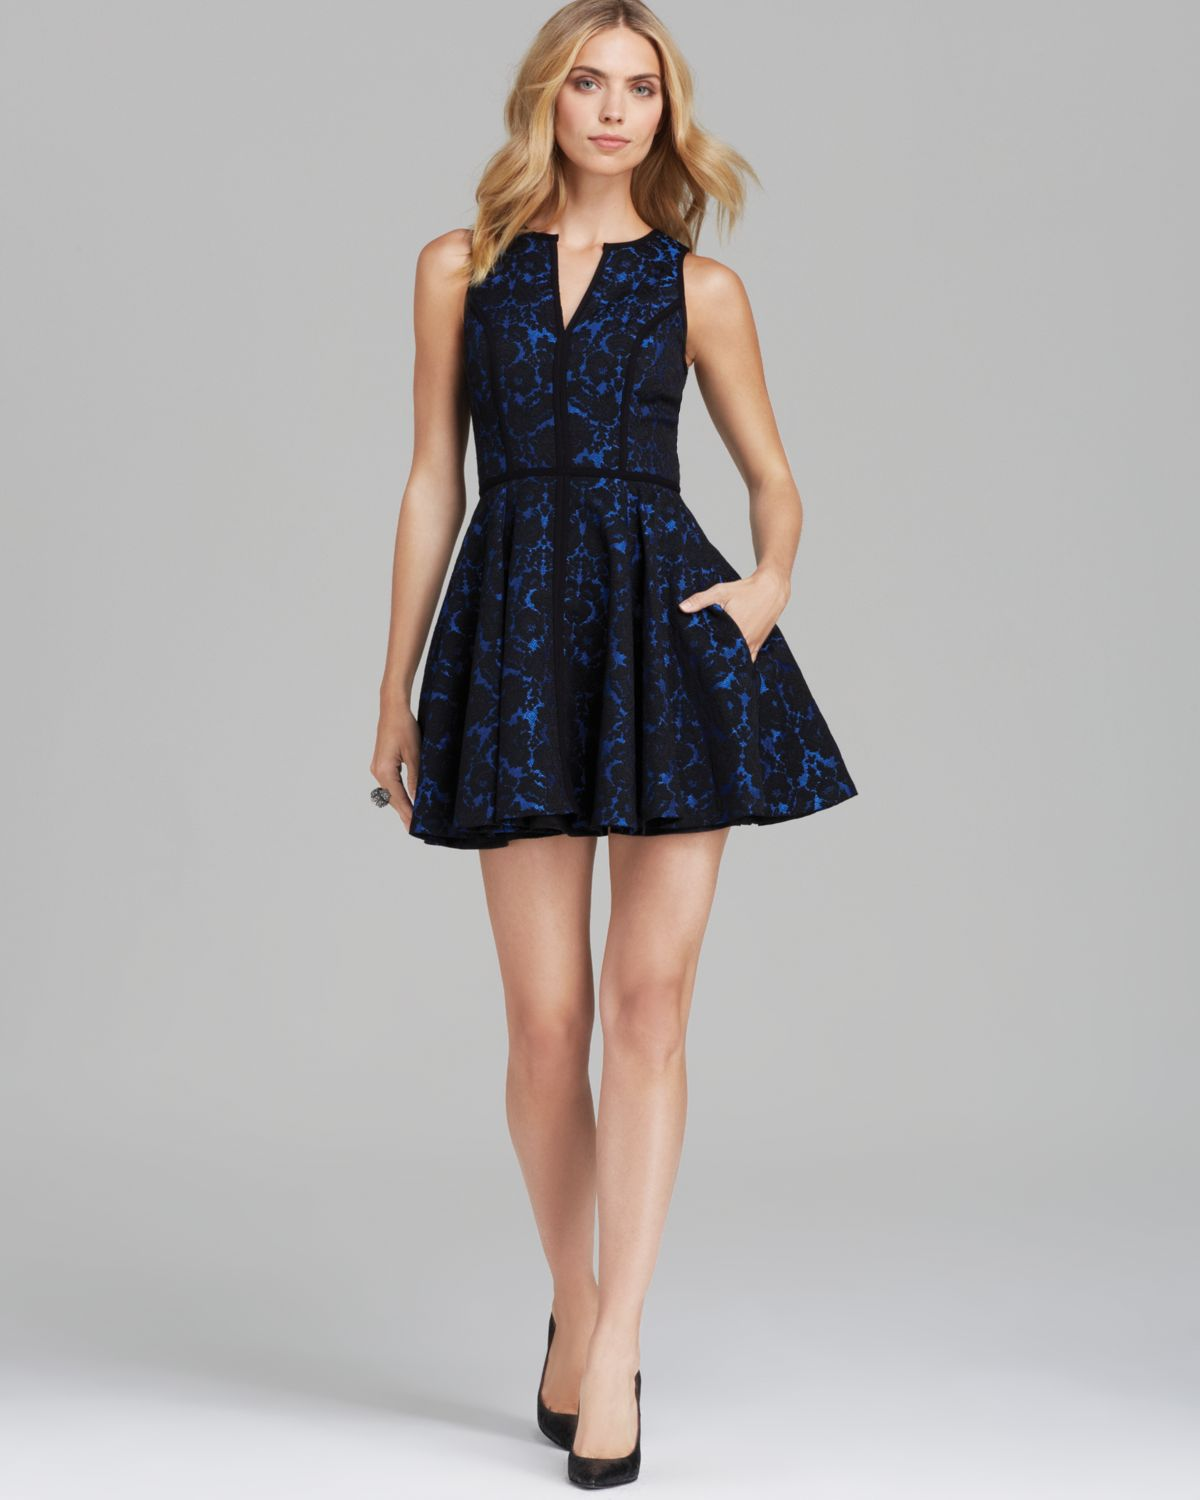 Lyst  Black Halo Sleeveless Floral Brocade Fit and Flare Dress Aria